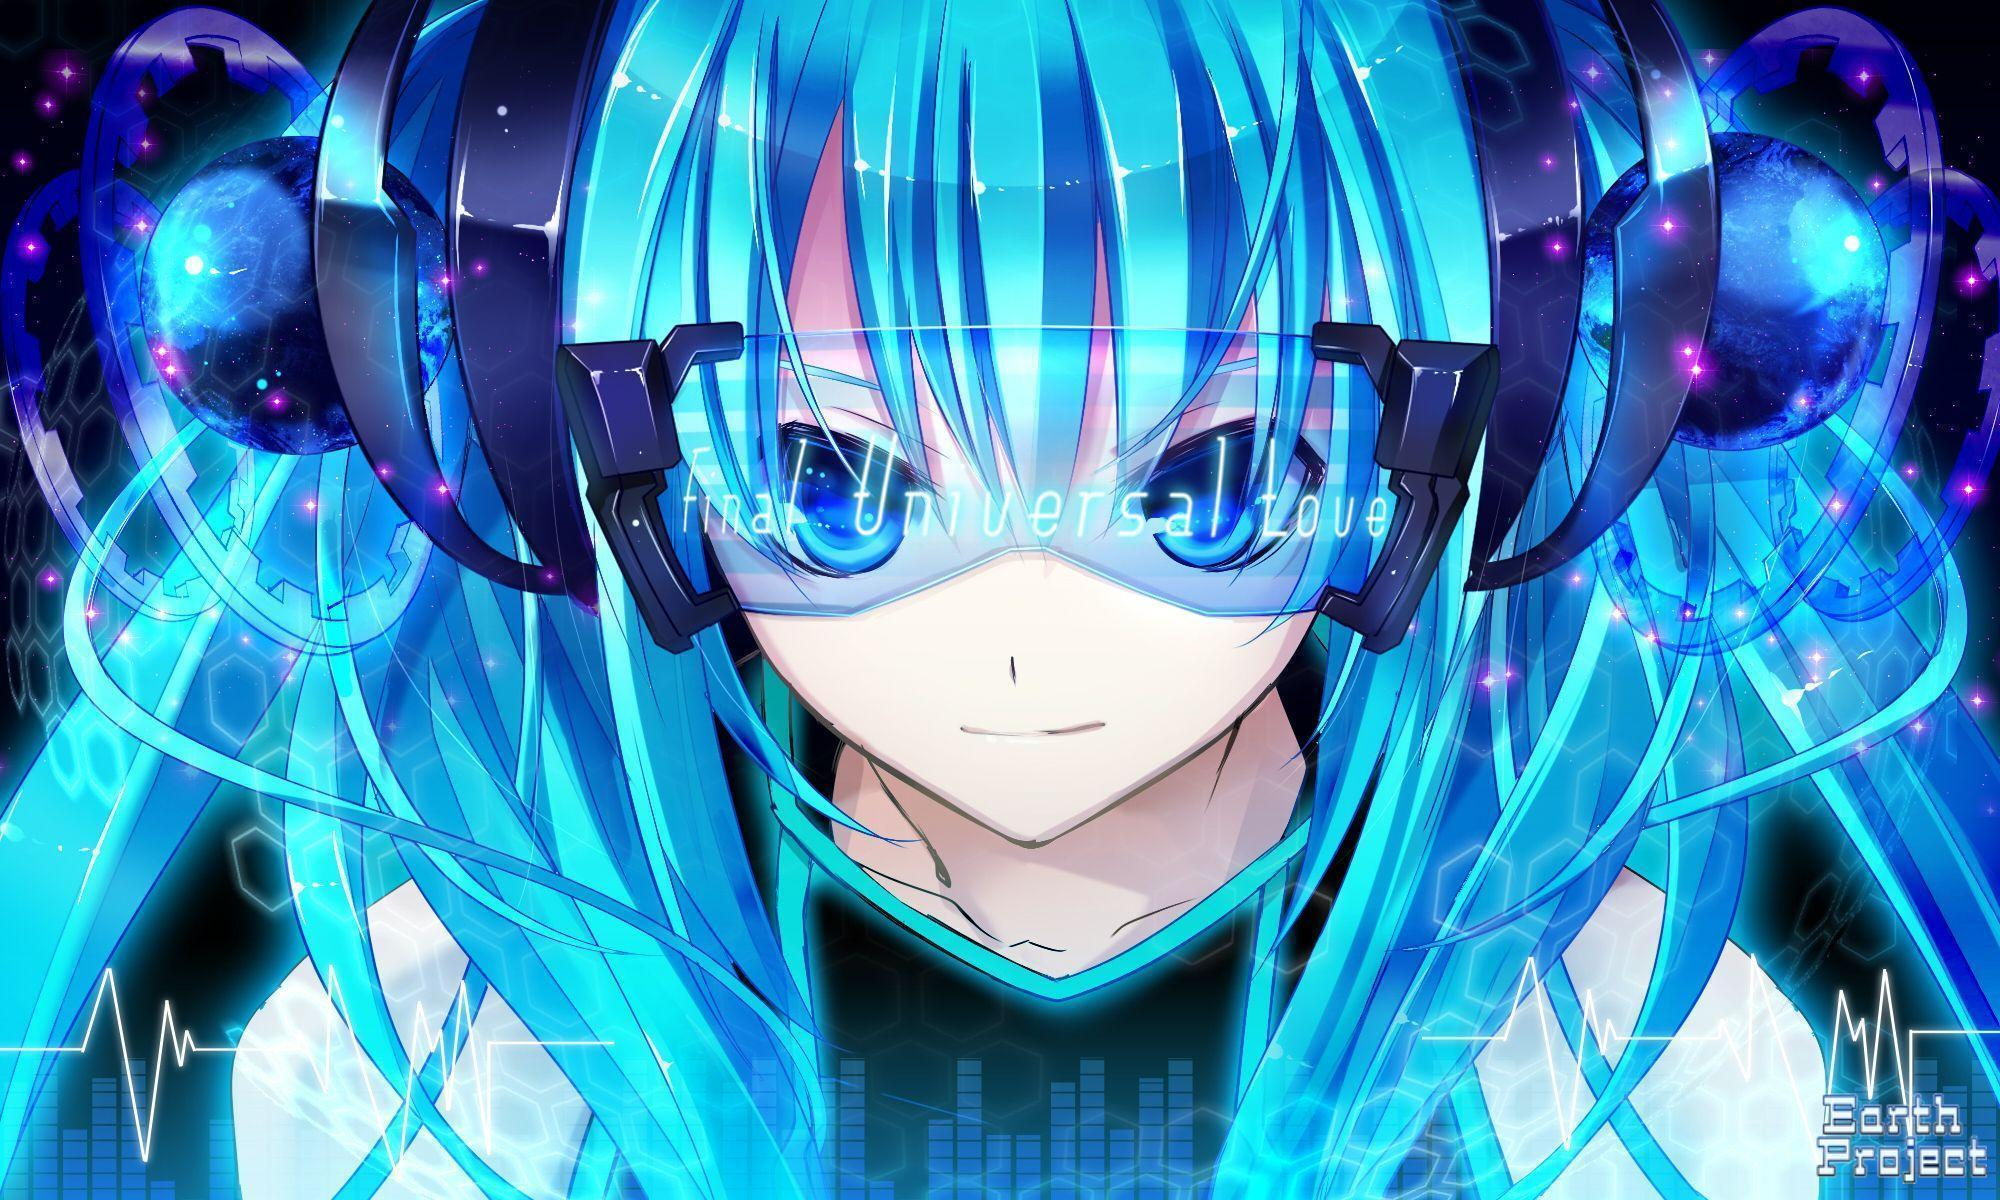 7626 Vocaloid HD Wallpapers | Backgrounds - Wallpaper Abyss